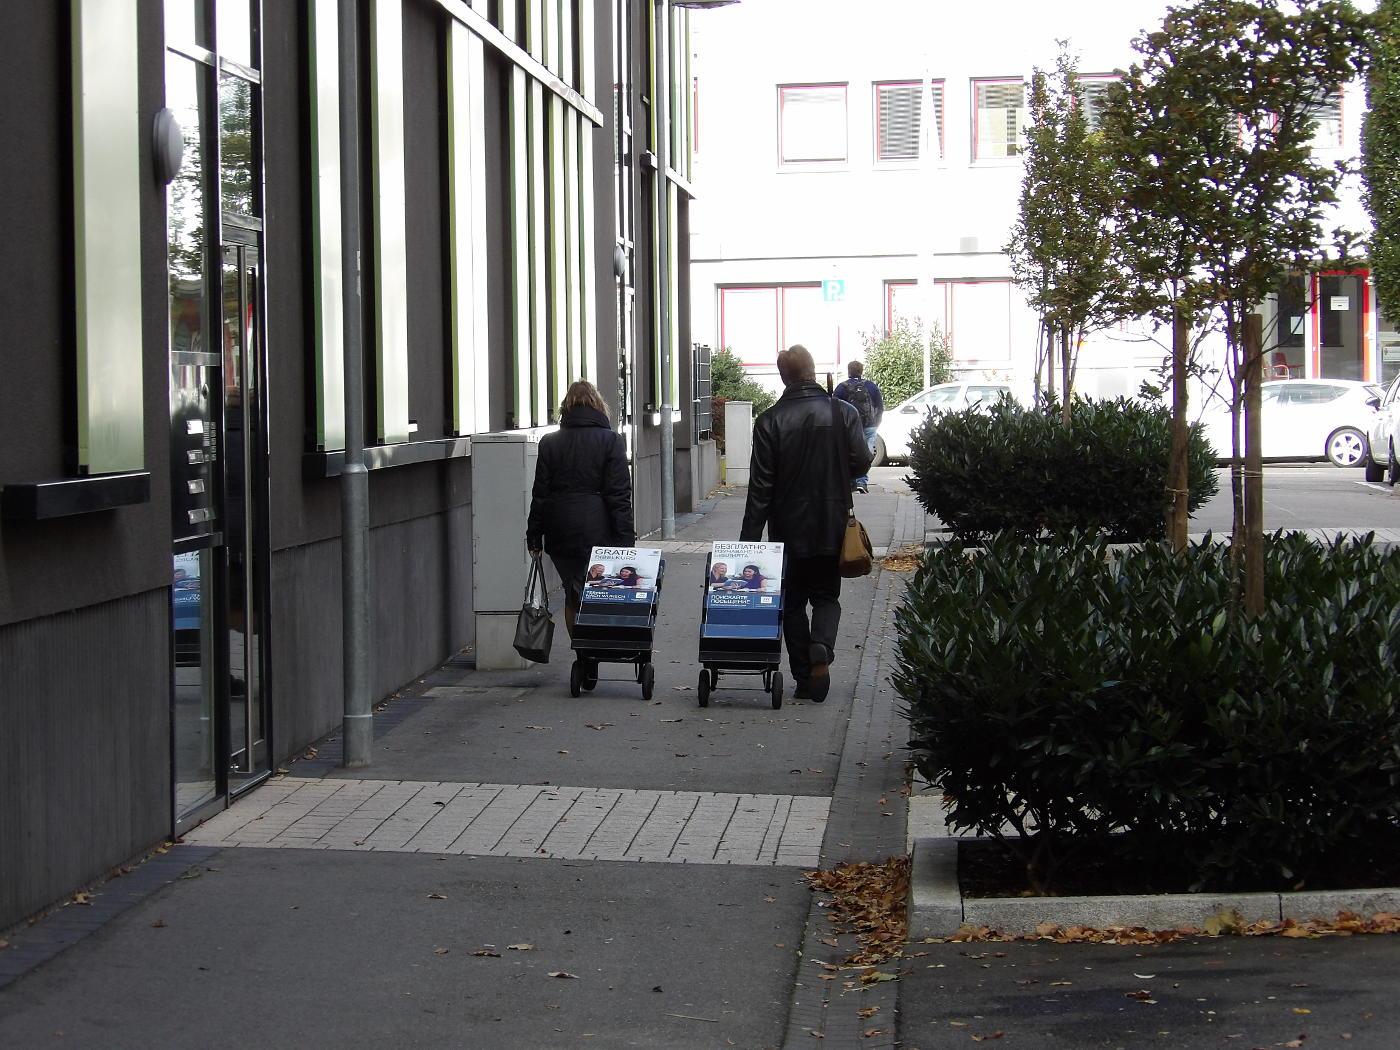 Jehovah's Witnesses in Bruchsal and Heilbronn